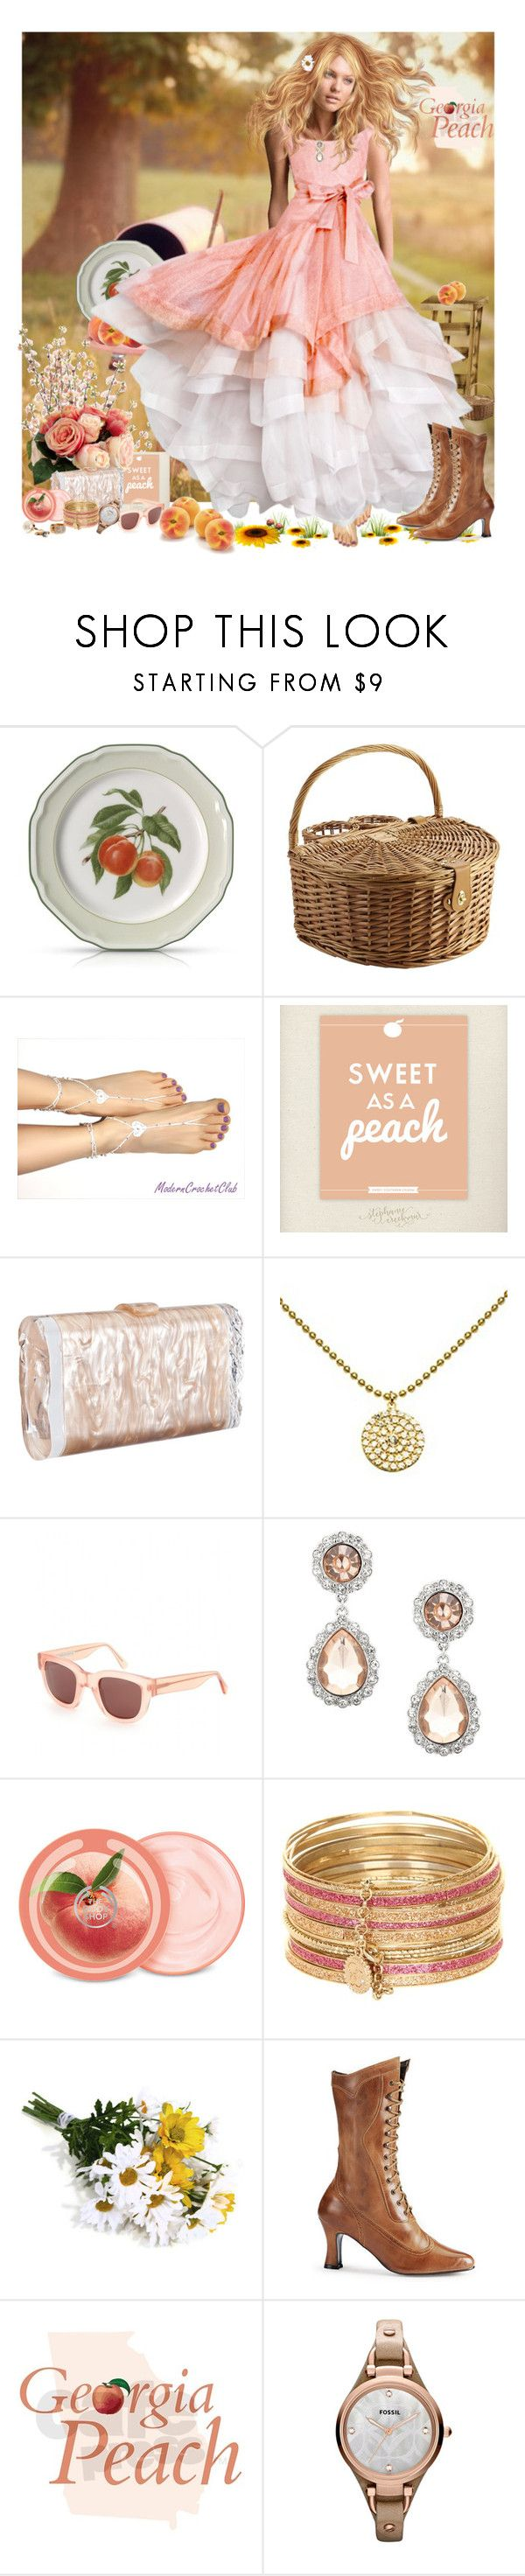 """Georgia Peach"" by summersunshinesk7 ❤ liked on Polyvore featuring Pier 1 Imports, FRUIT, WALL, Winward, Edie Parker, Lola James Jewelry, Acne Studios, MOOD, The Body Shop and Jessica Simpson"